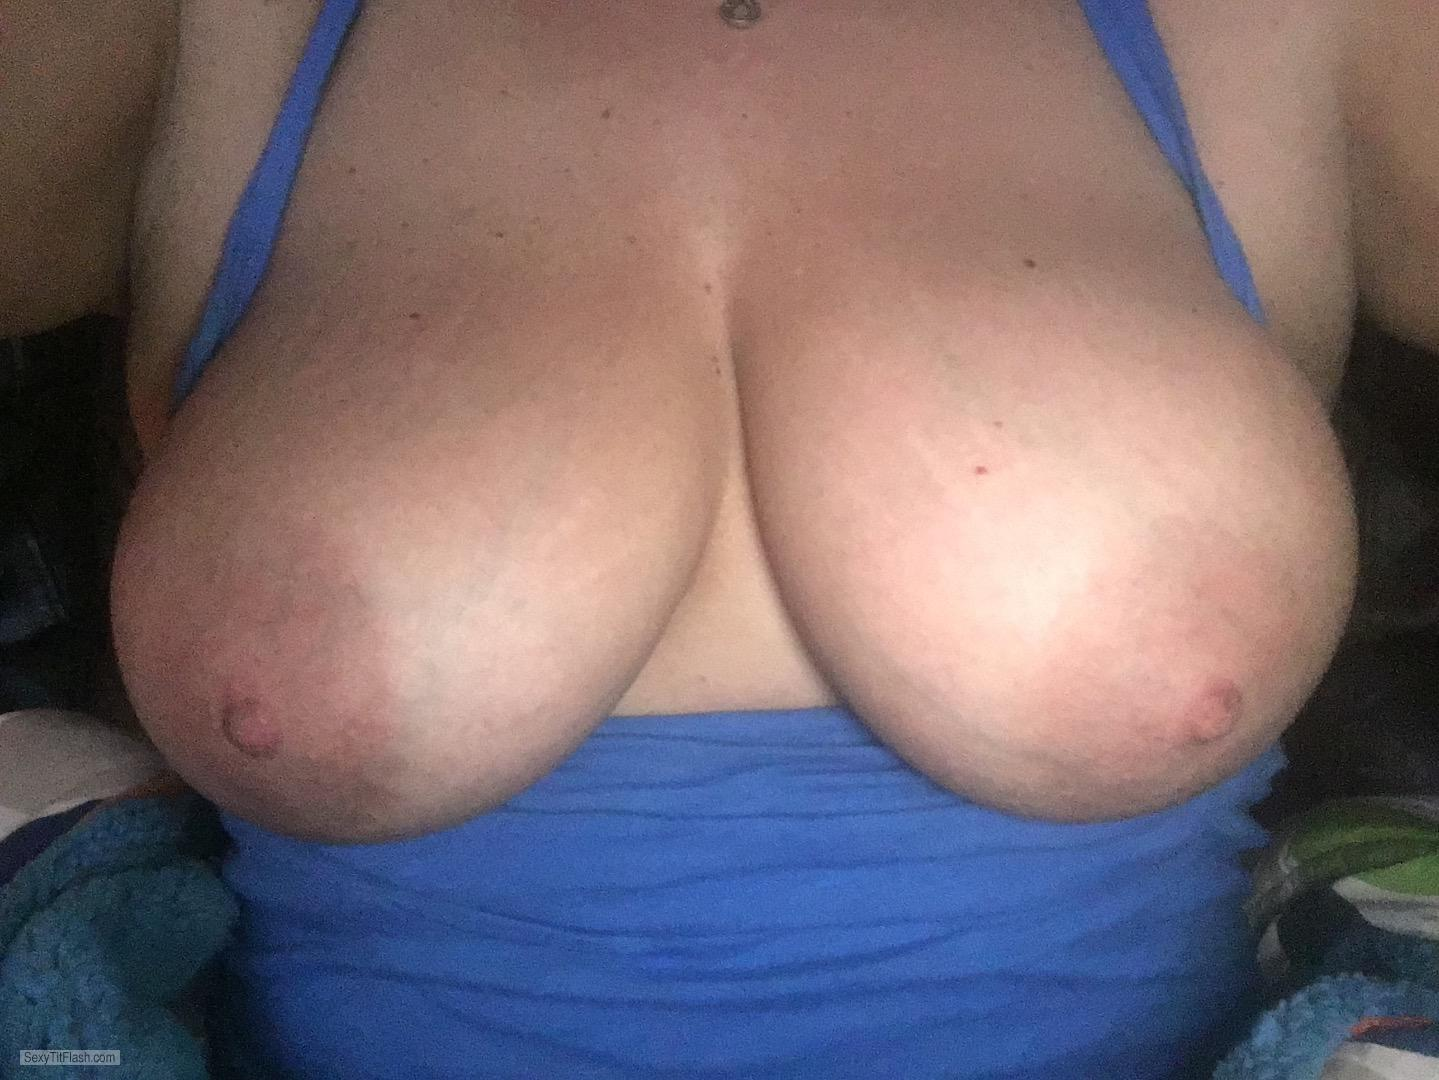 My Big Tits Topless Selfie by Pats Fan